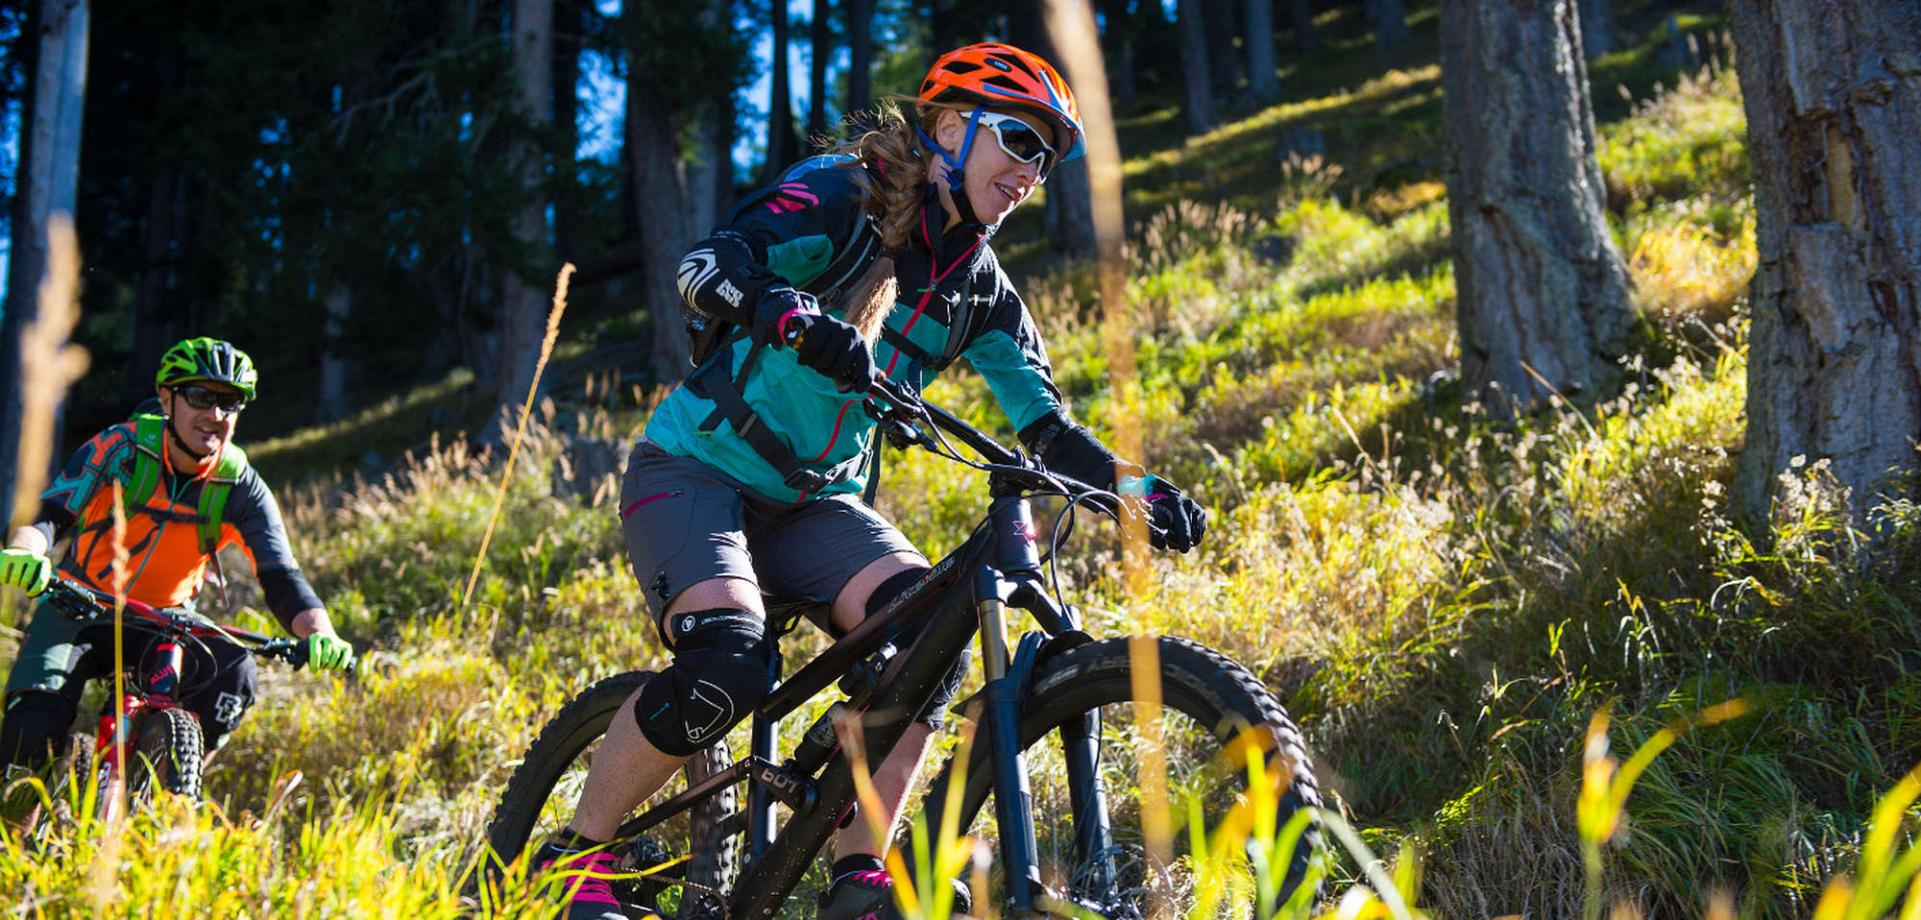 E-Mountainbike Trailtour around Naturno